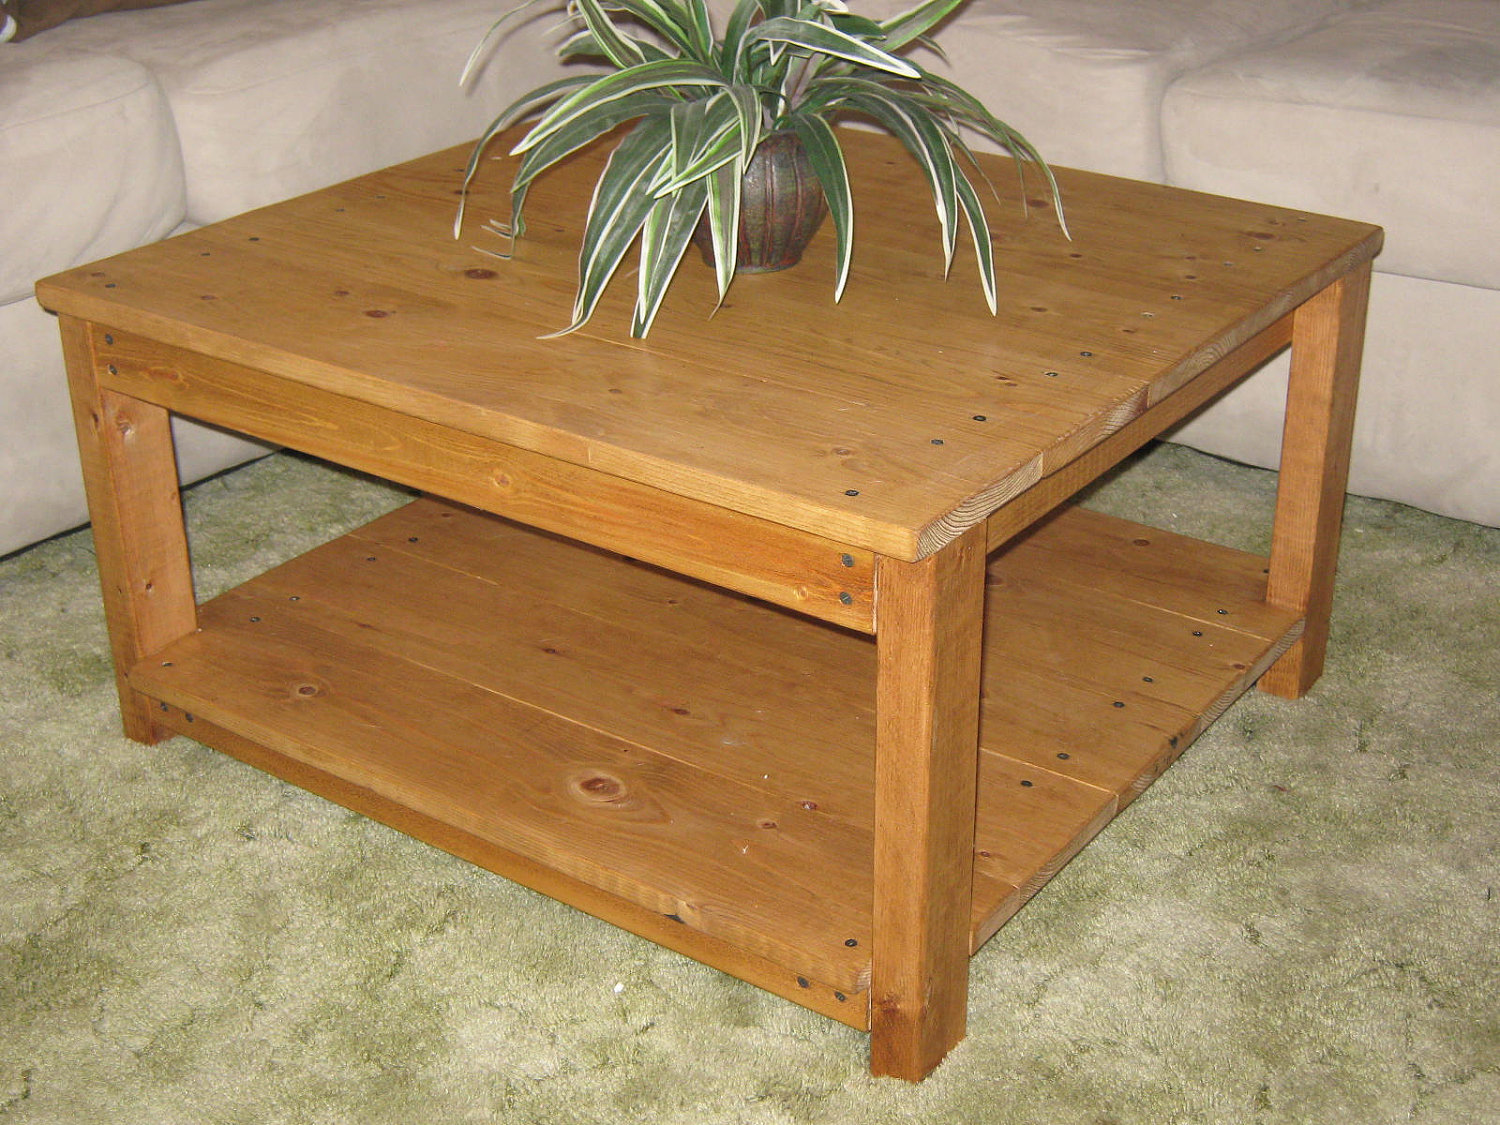 wooden coffee table designs photo - 10